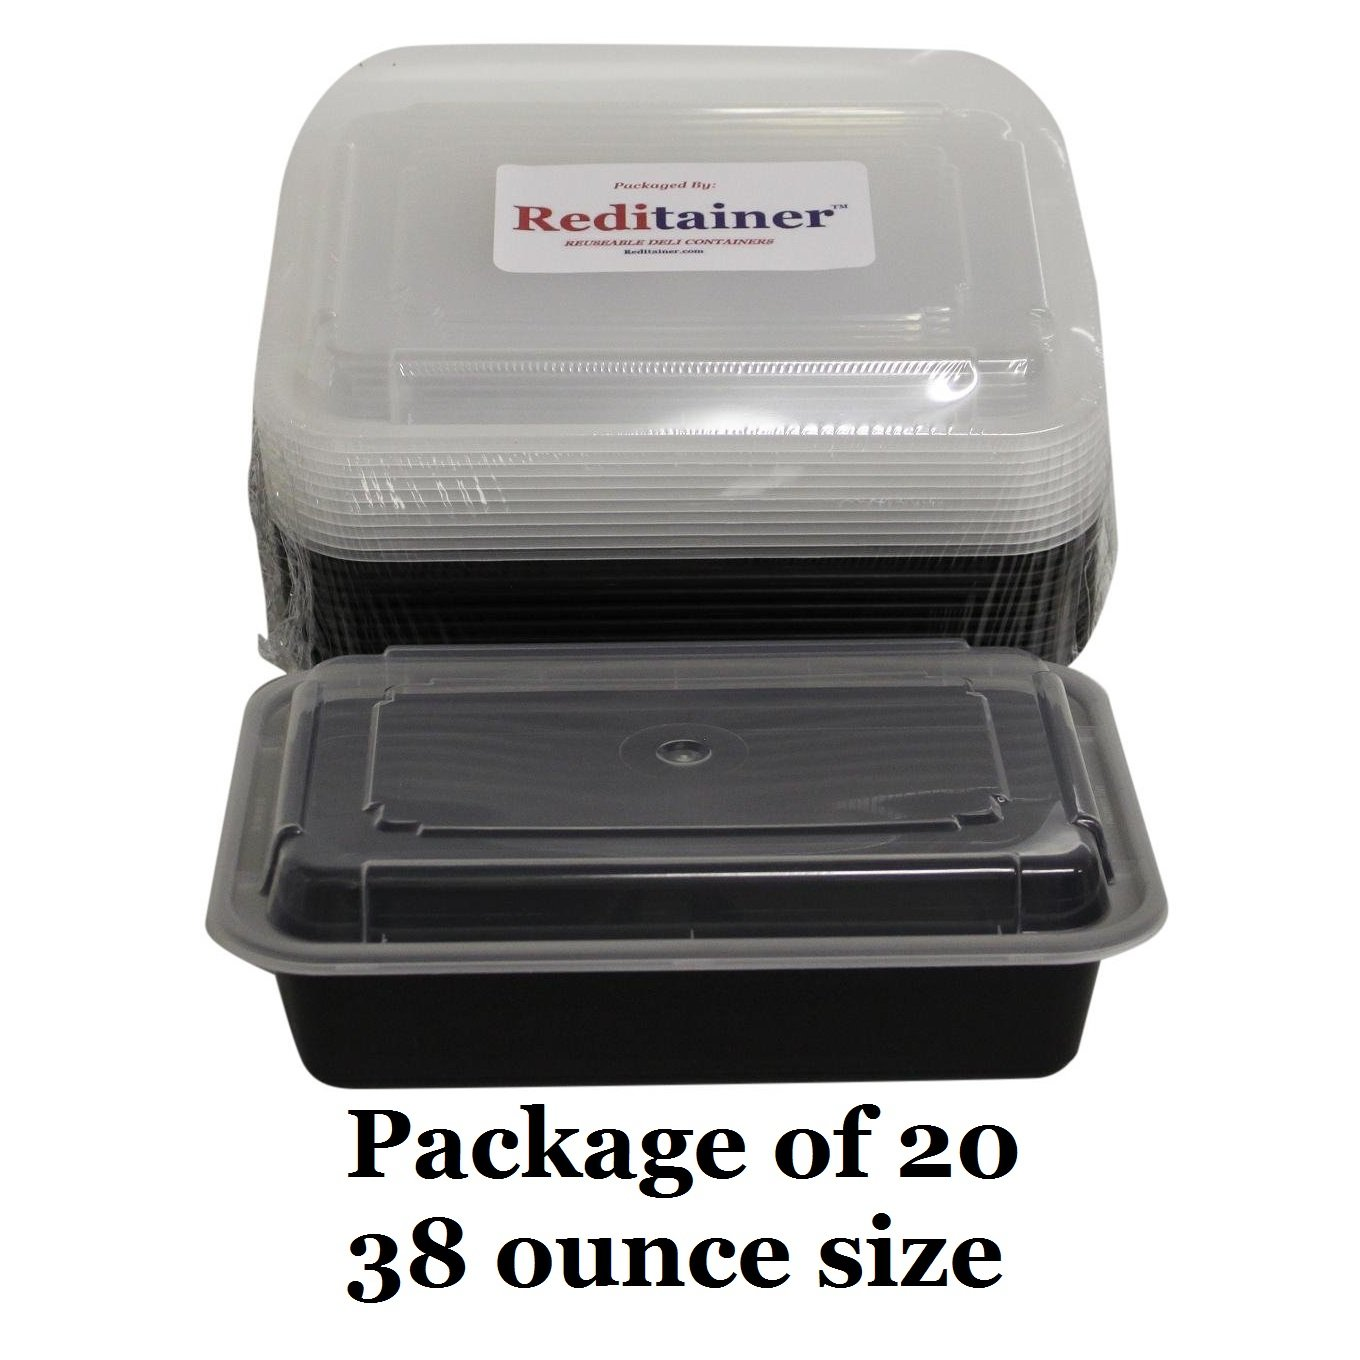 Amazoncom Reditainer Rectangular Food Storage Containers With - Compact grill containers